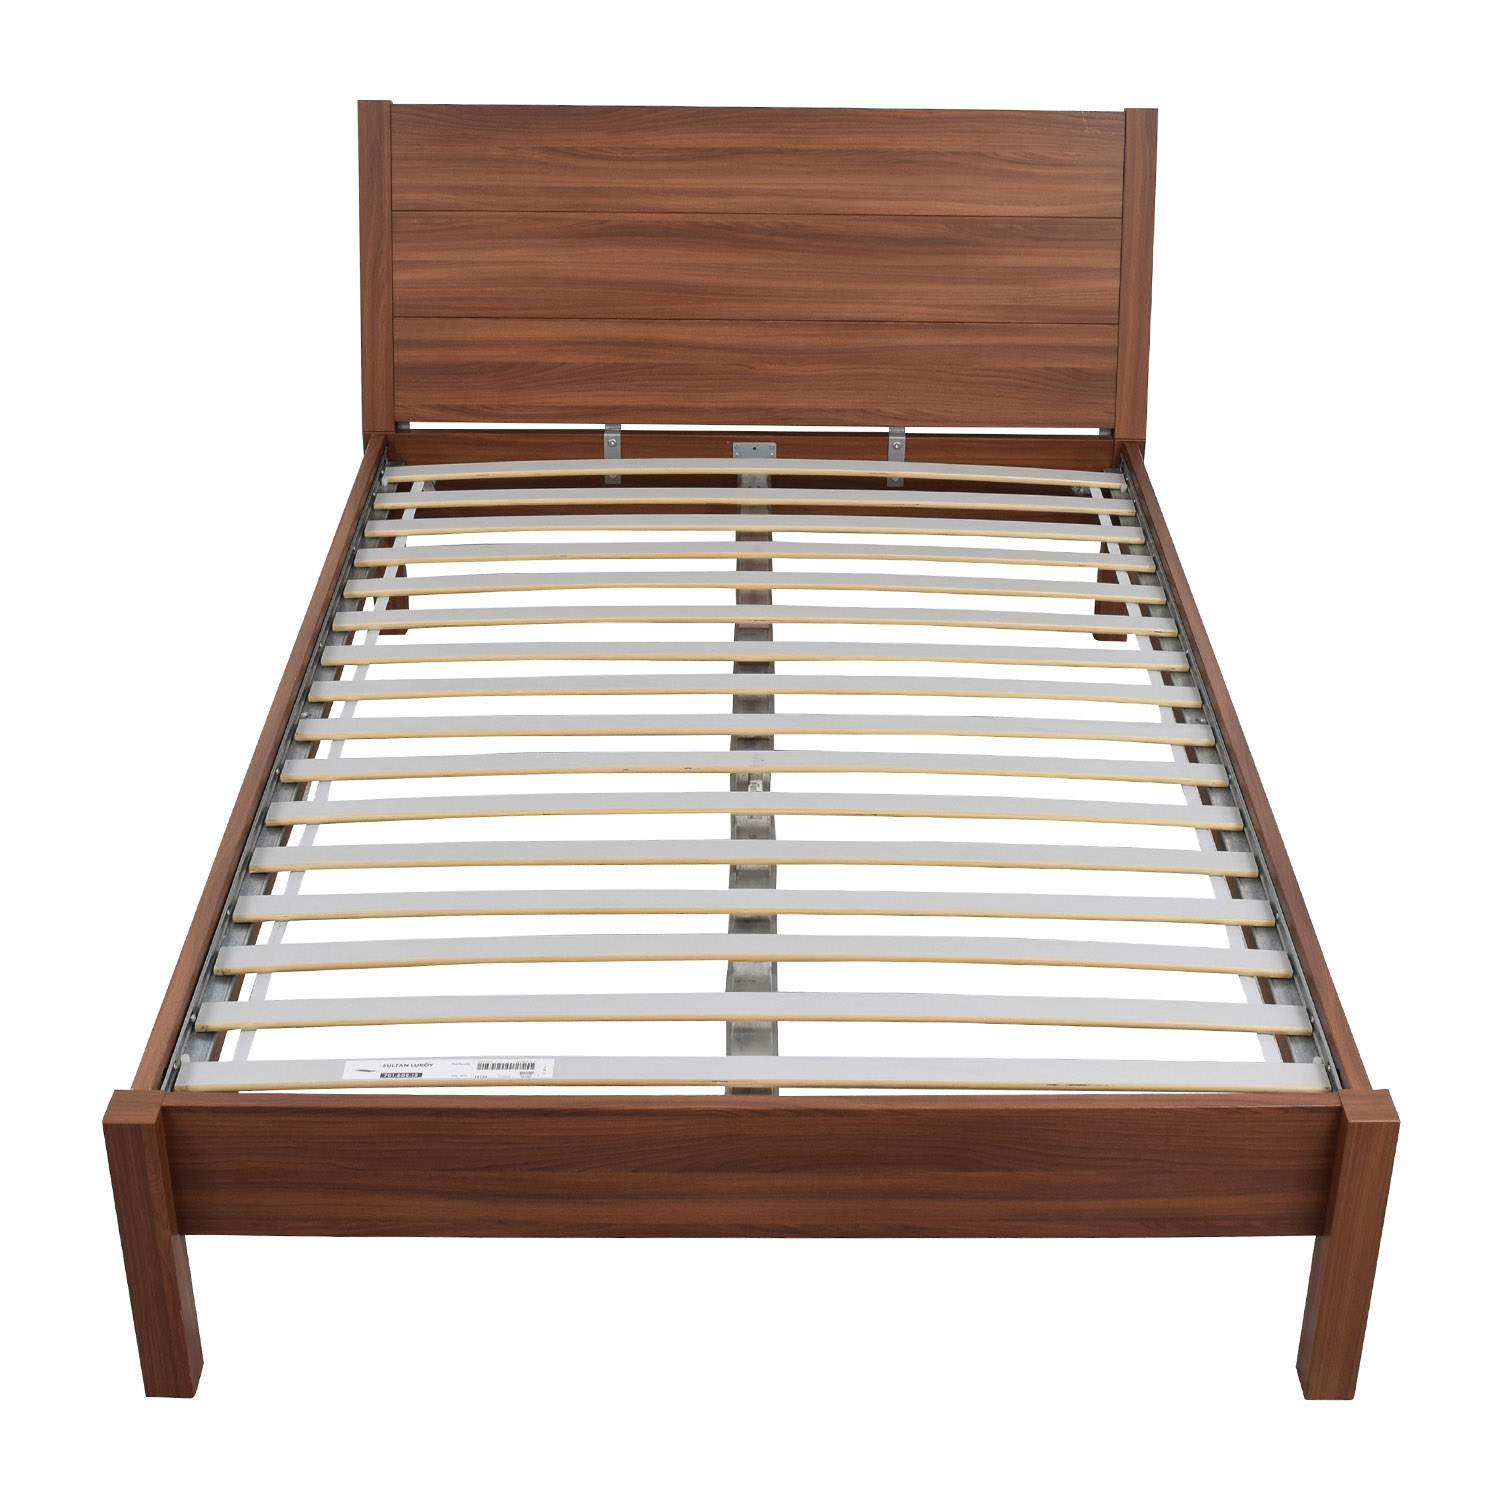 Ikea Queen Wooden Platform Bed Frame On